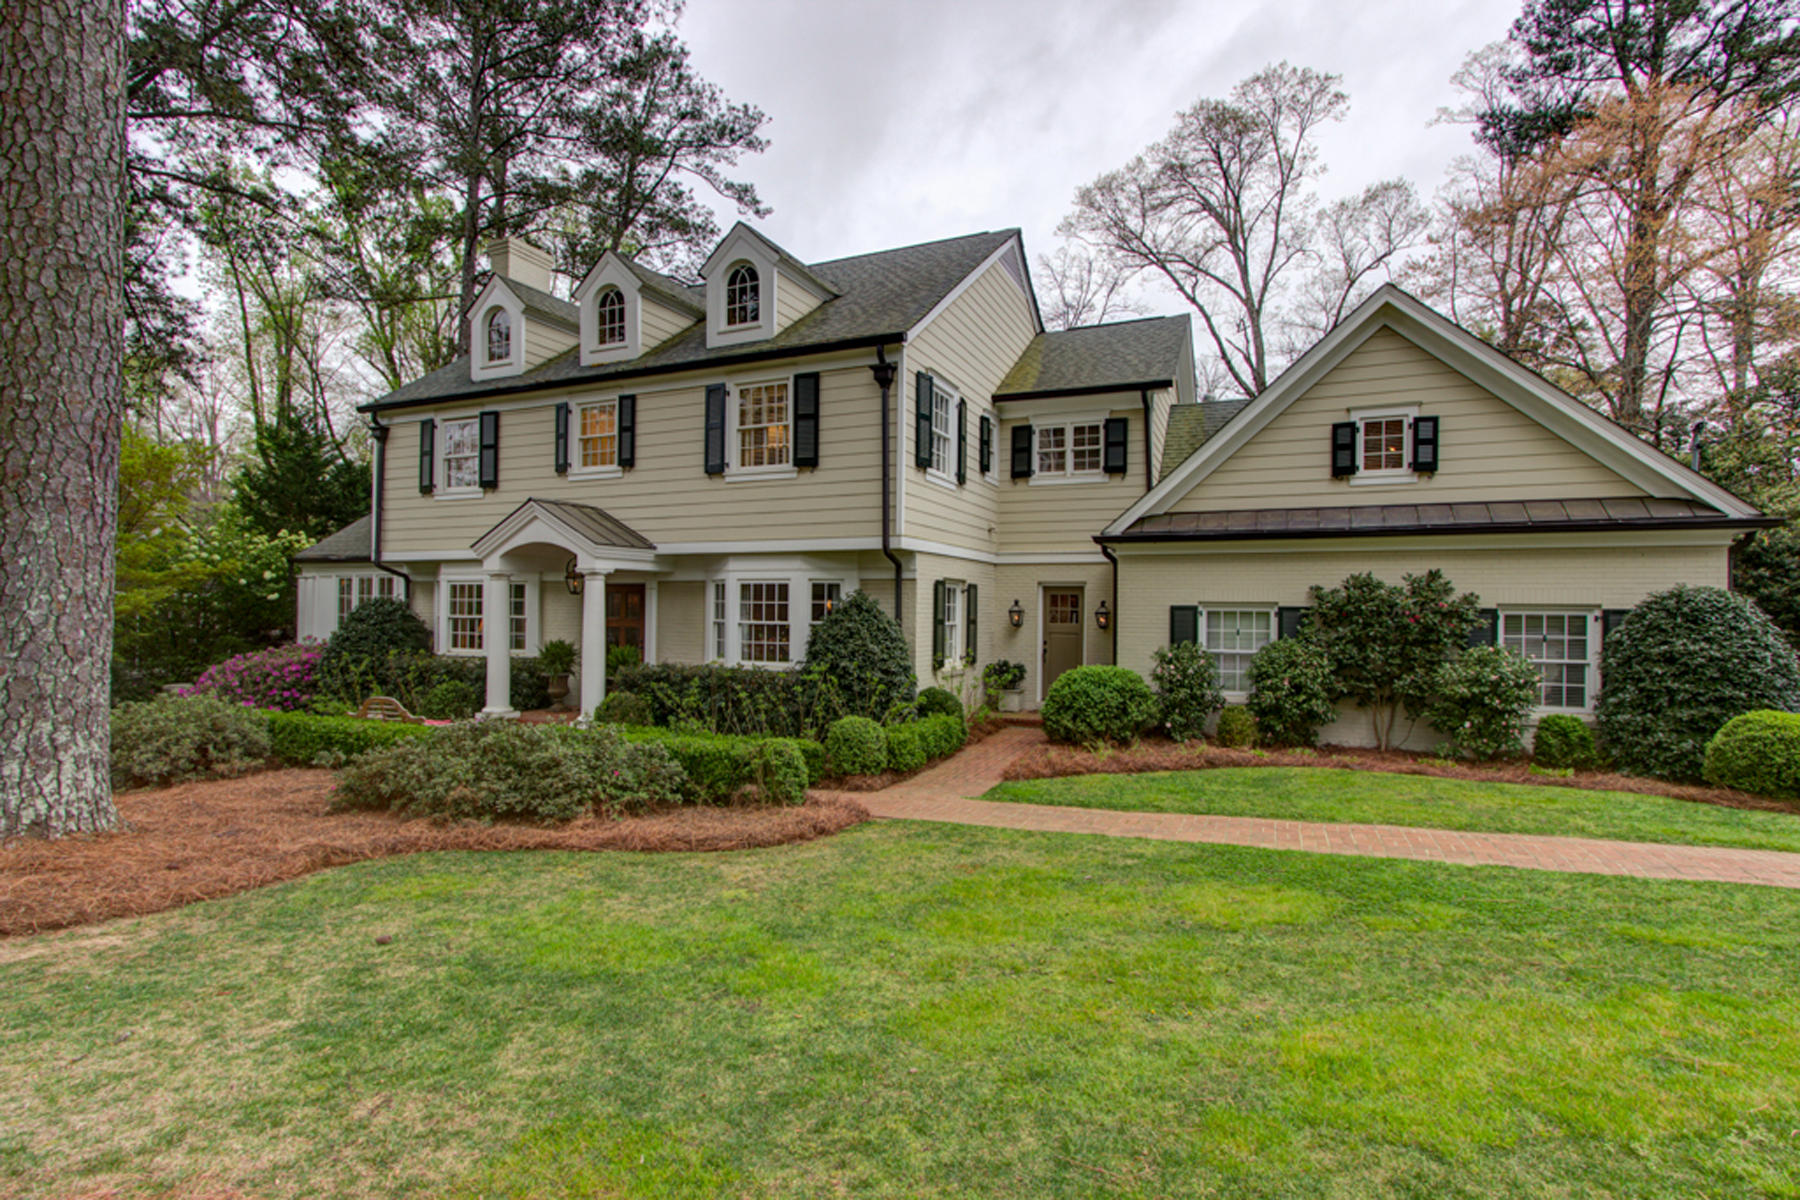 Single Family Home for Sale at In the Heart of Brookhaven 4172 Club Drive Brookhaven, Atlanta, Georgia, 30319 United States